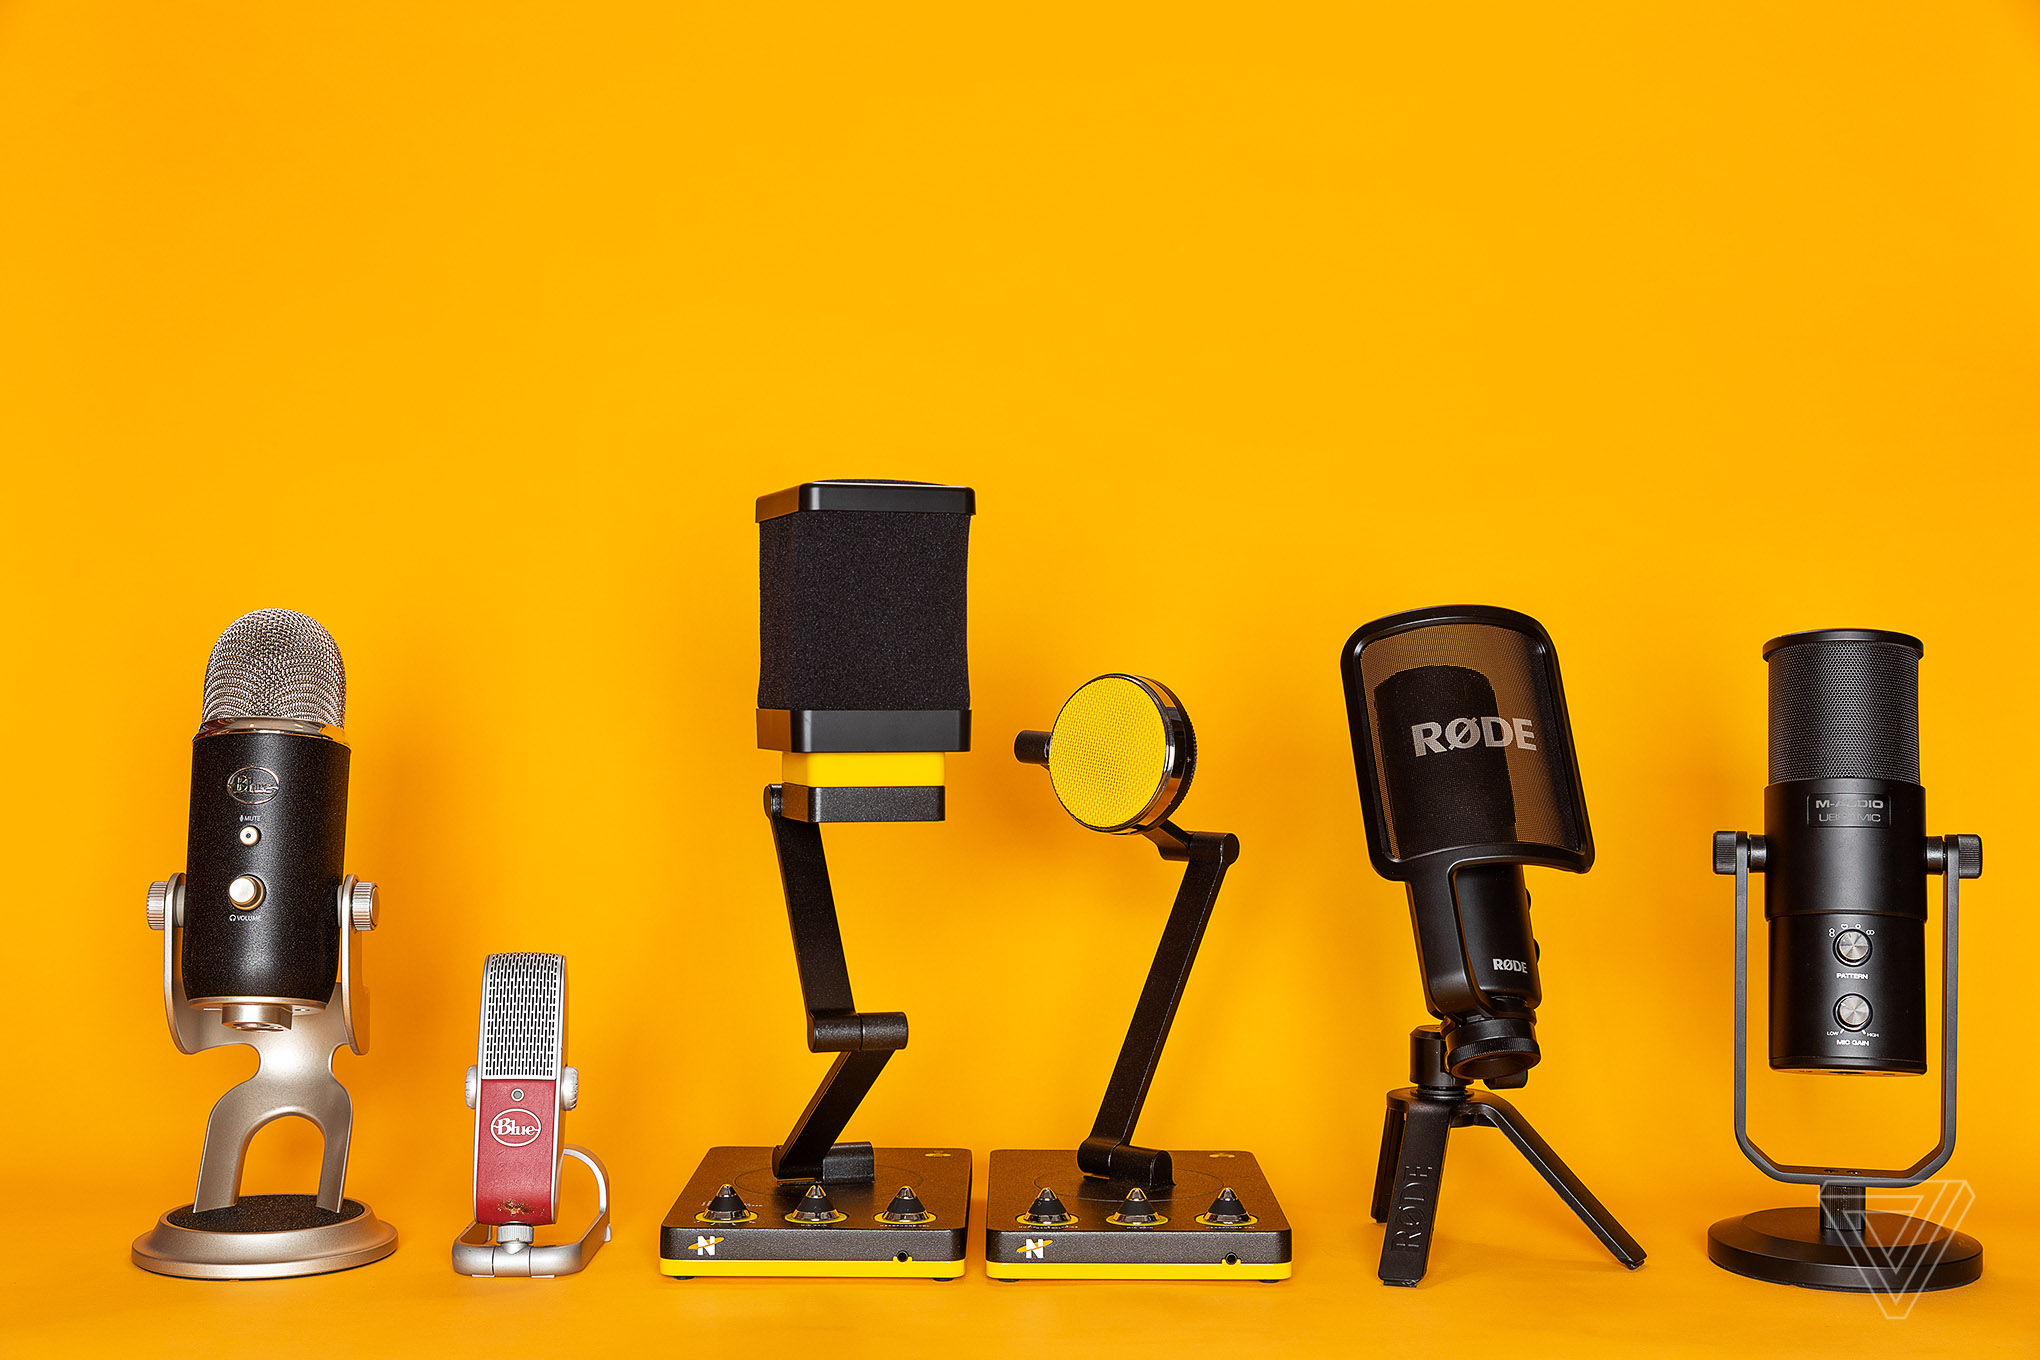 There is a wide range of microphones available for podcasters.